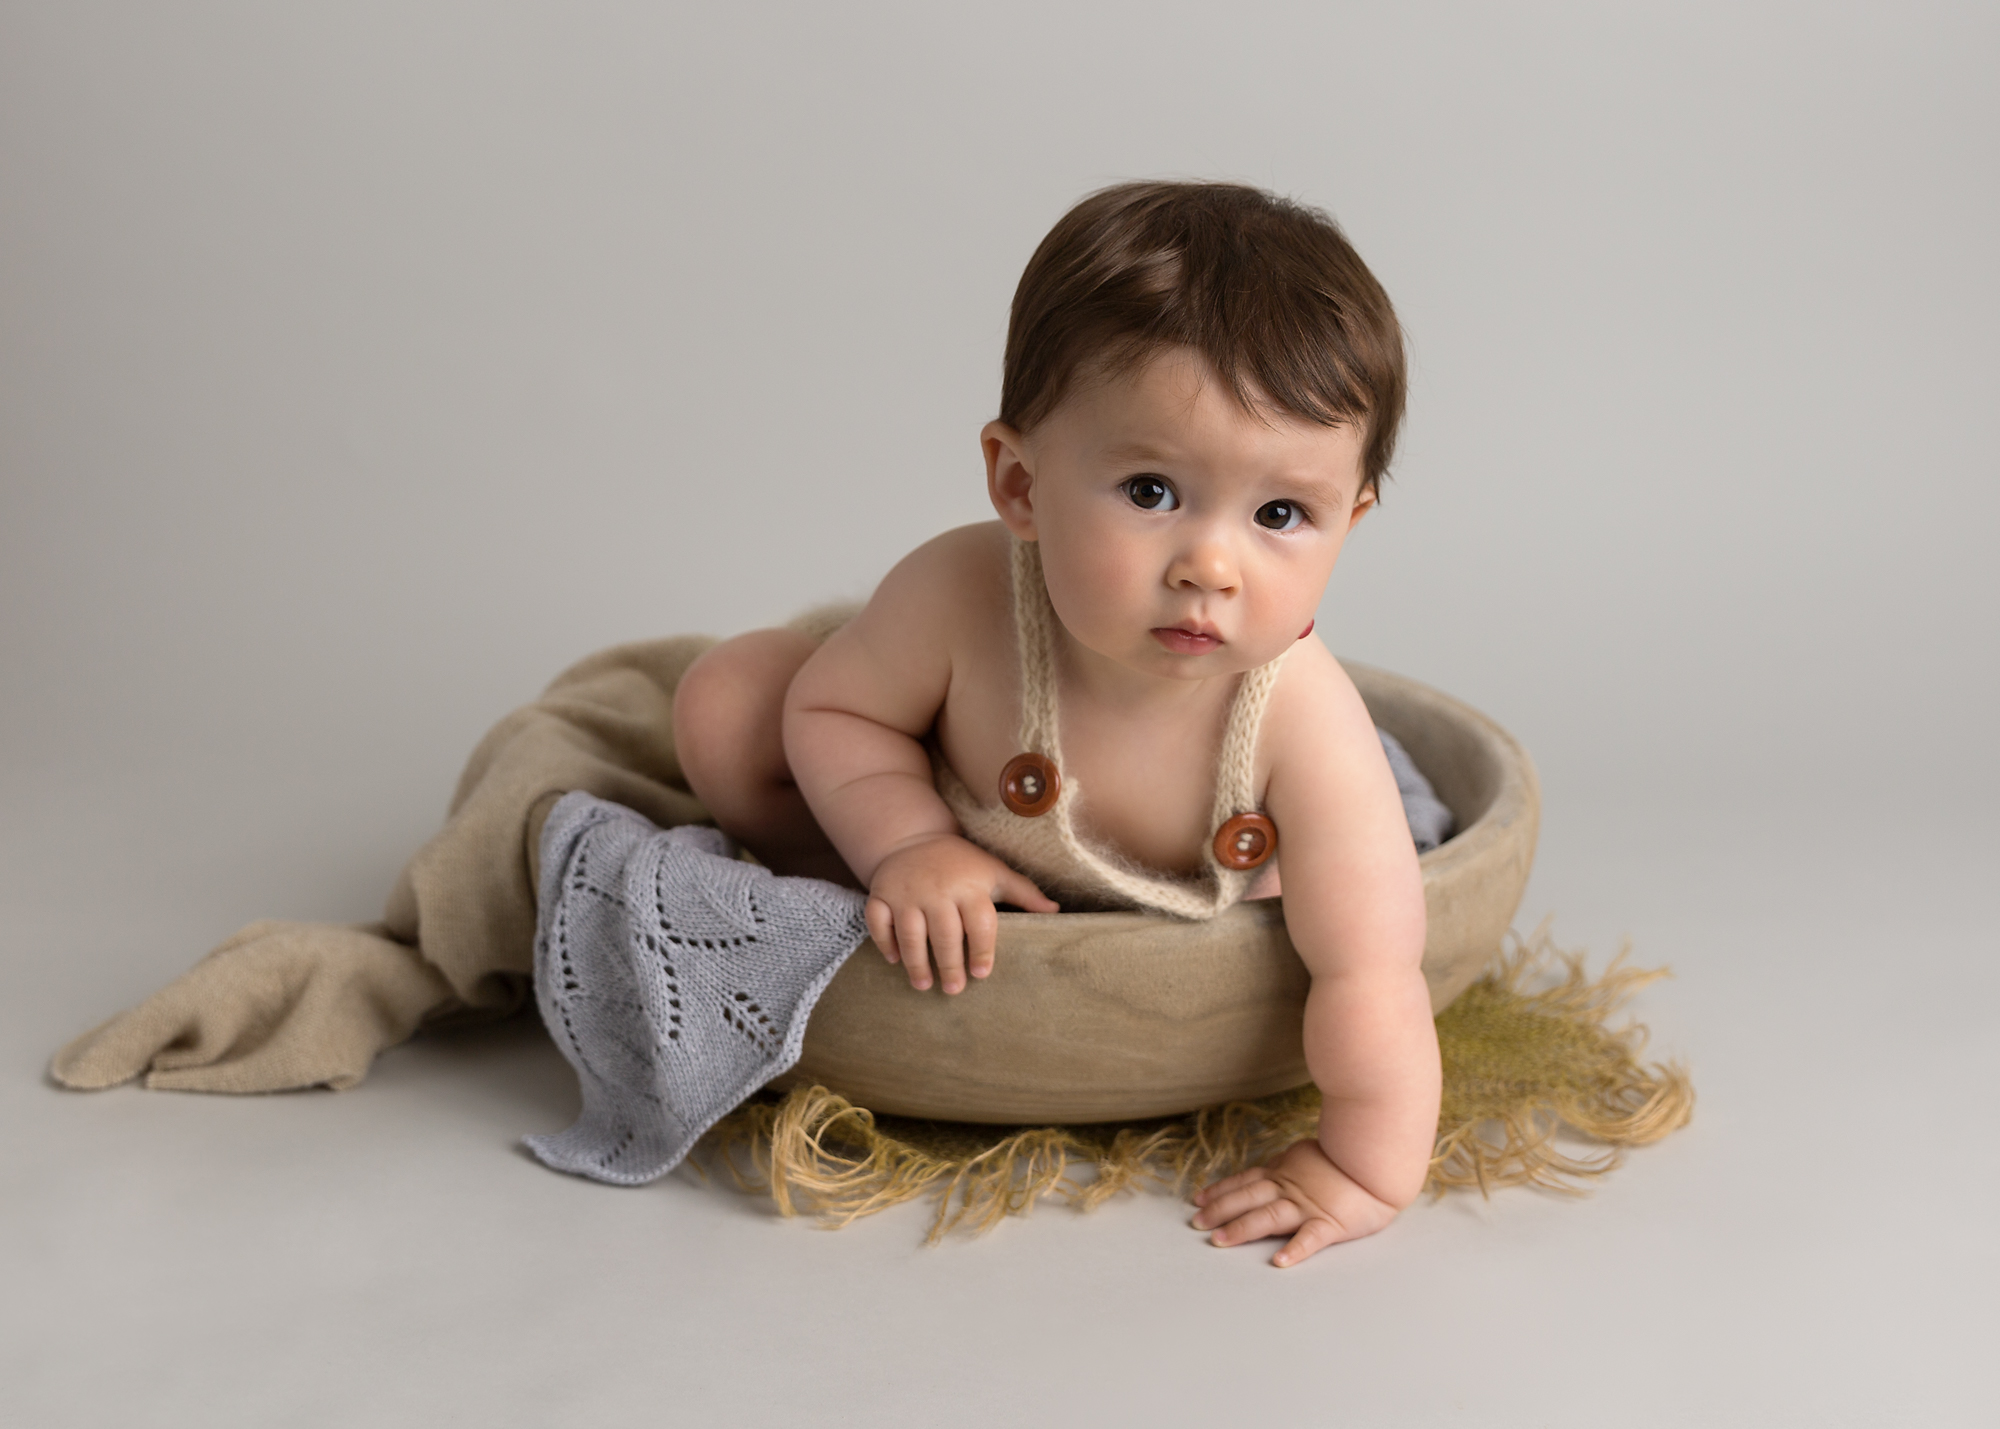 baby photographer south wales caerphilly, near cardiff,